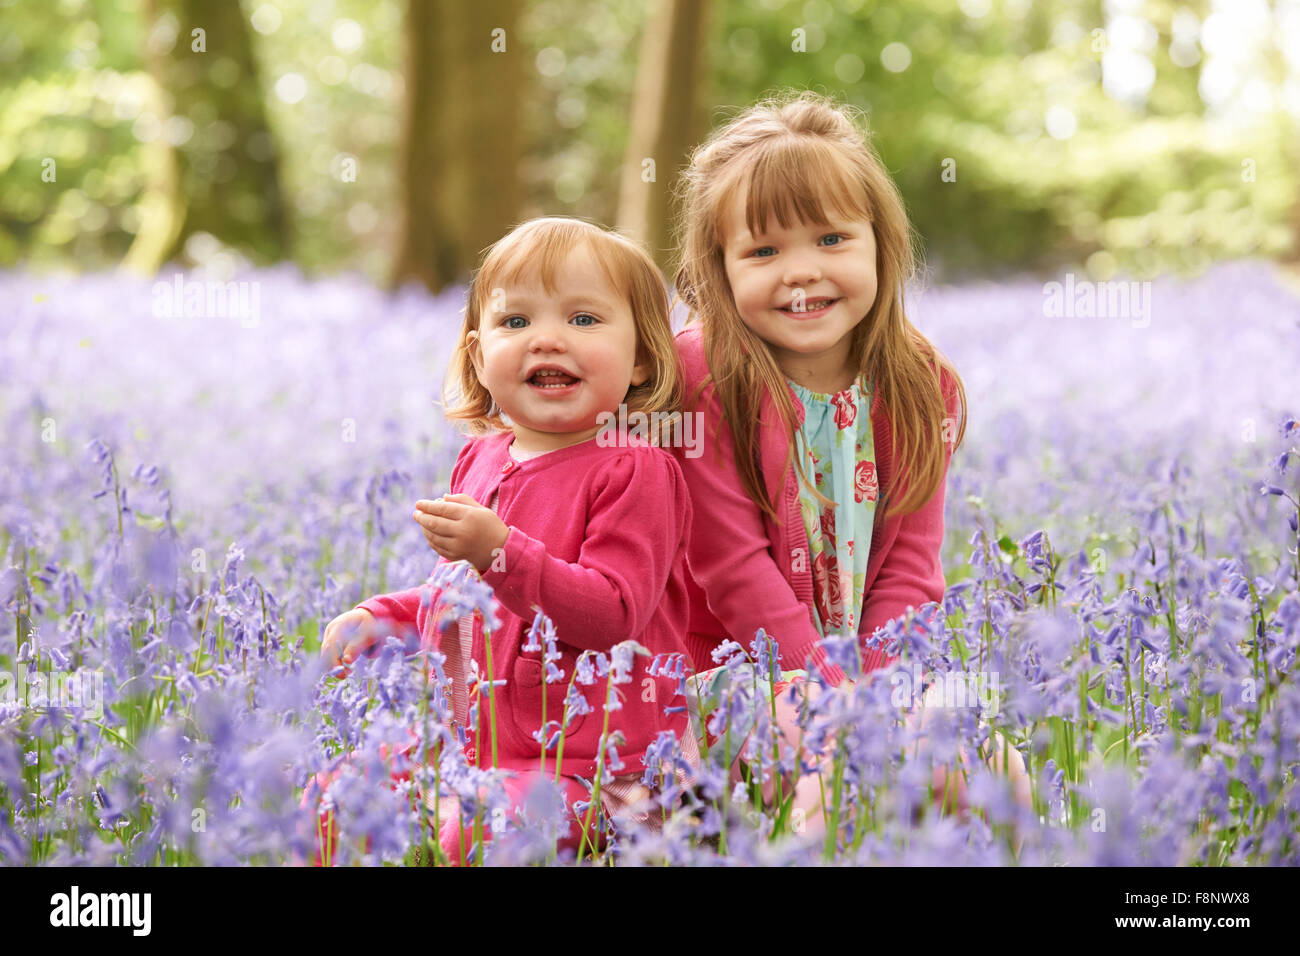 Two Girls Sitting In Bluebell Woods Together - Stock Image